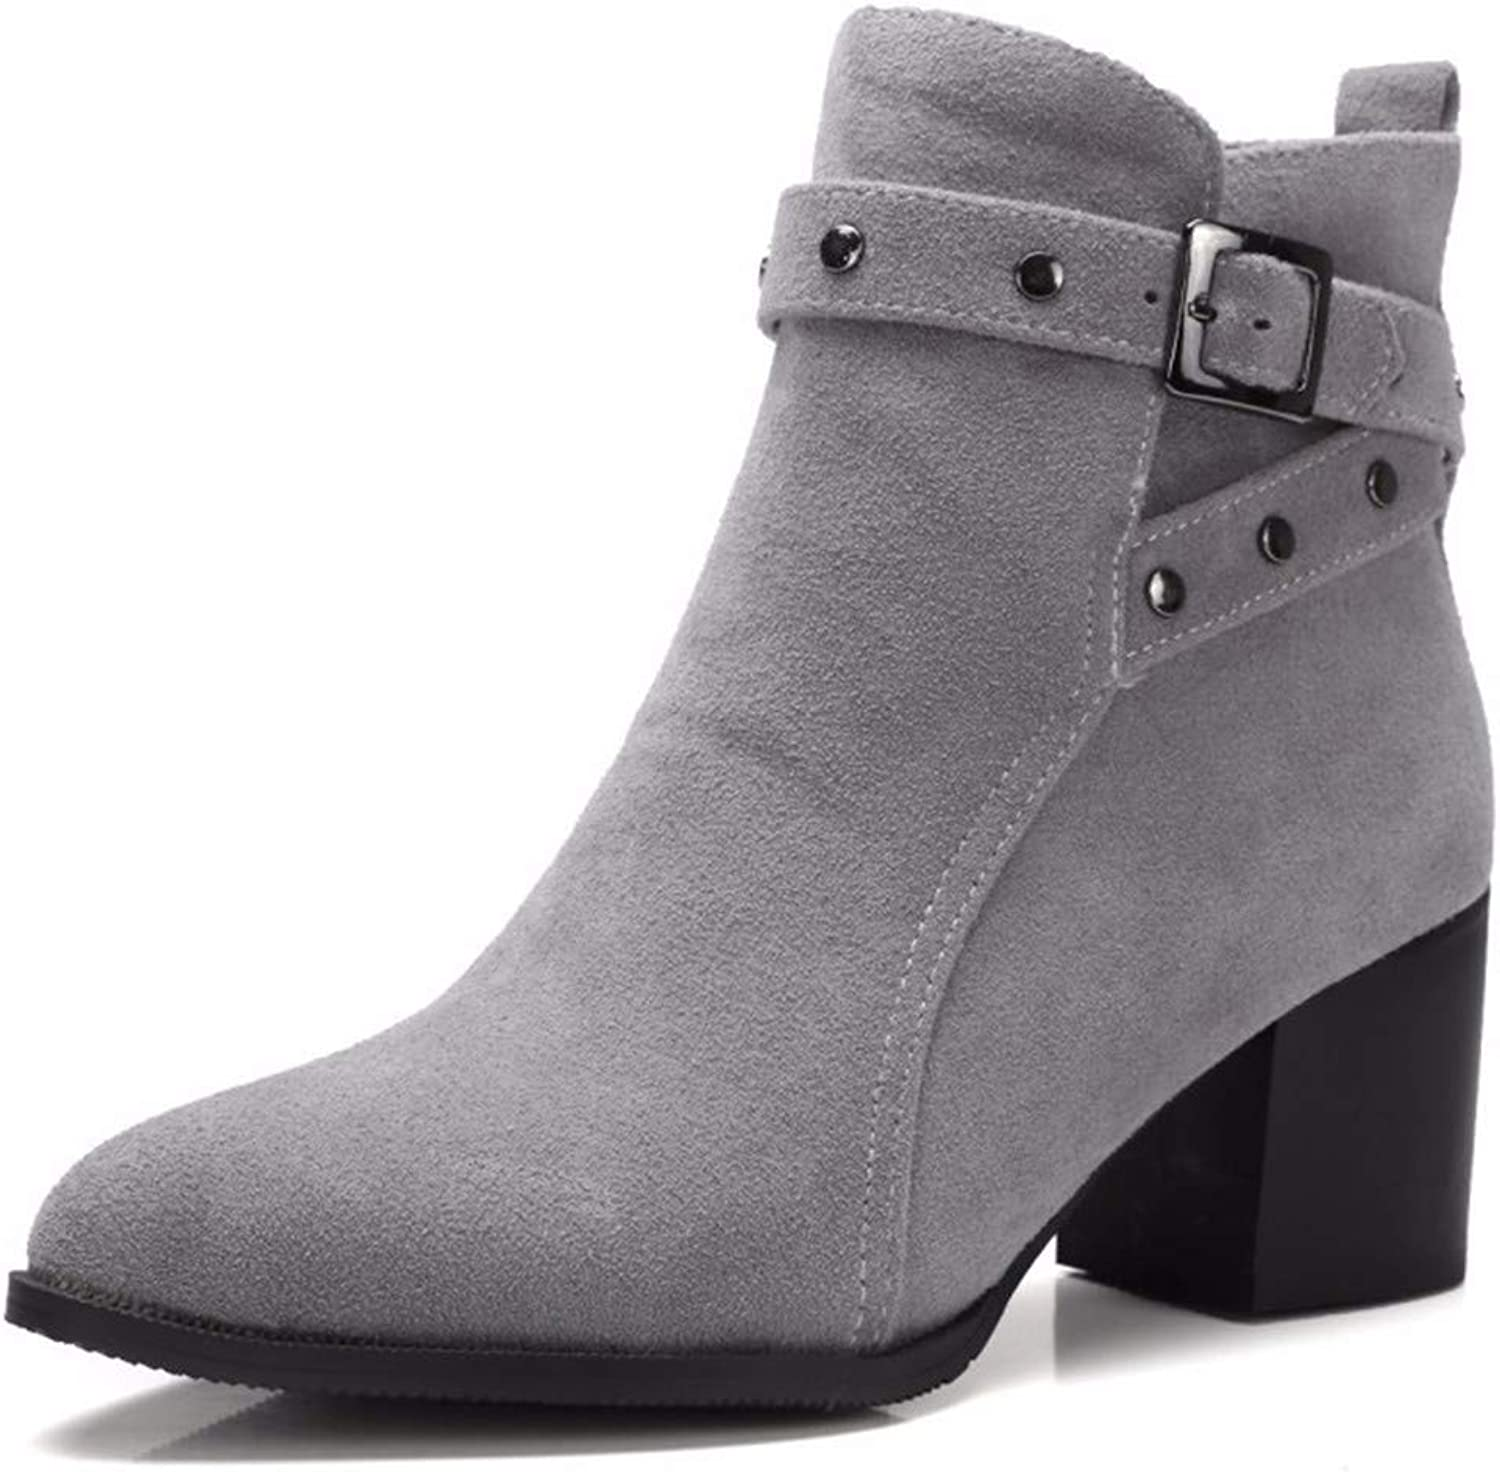 Autumn and Winter high Heels Boots Fashion Boots Size